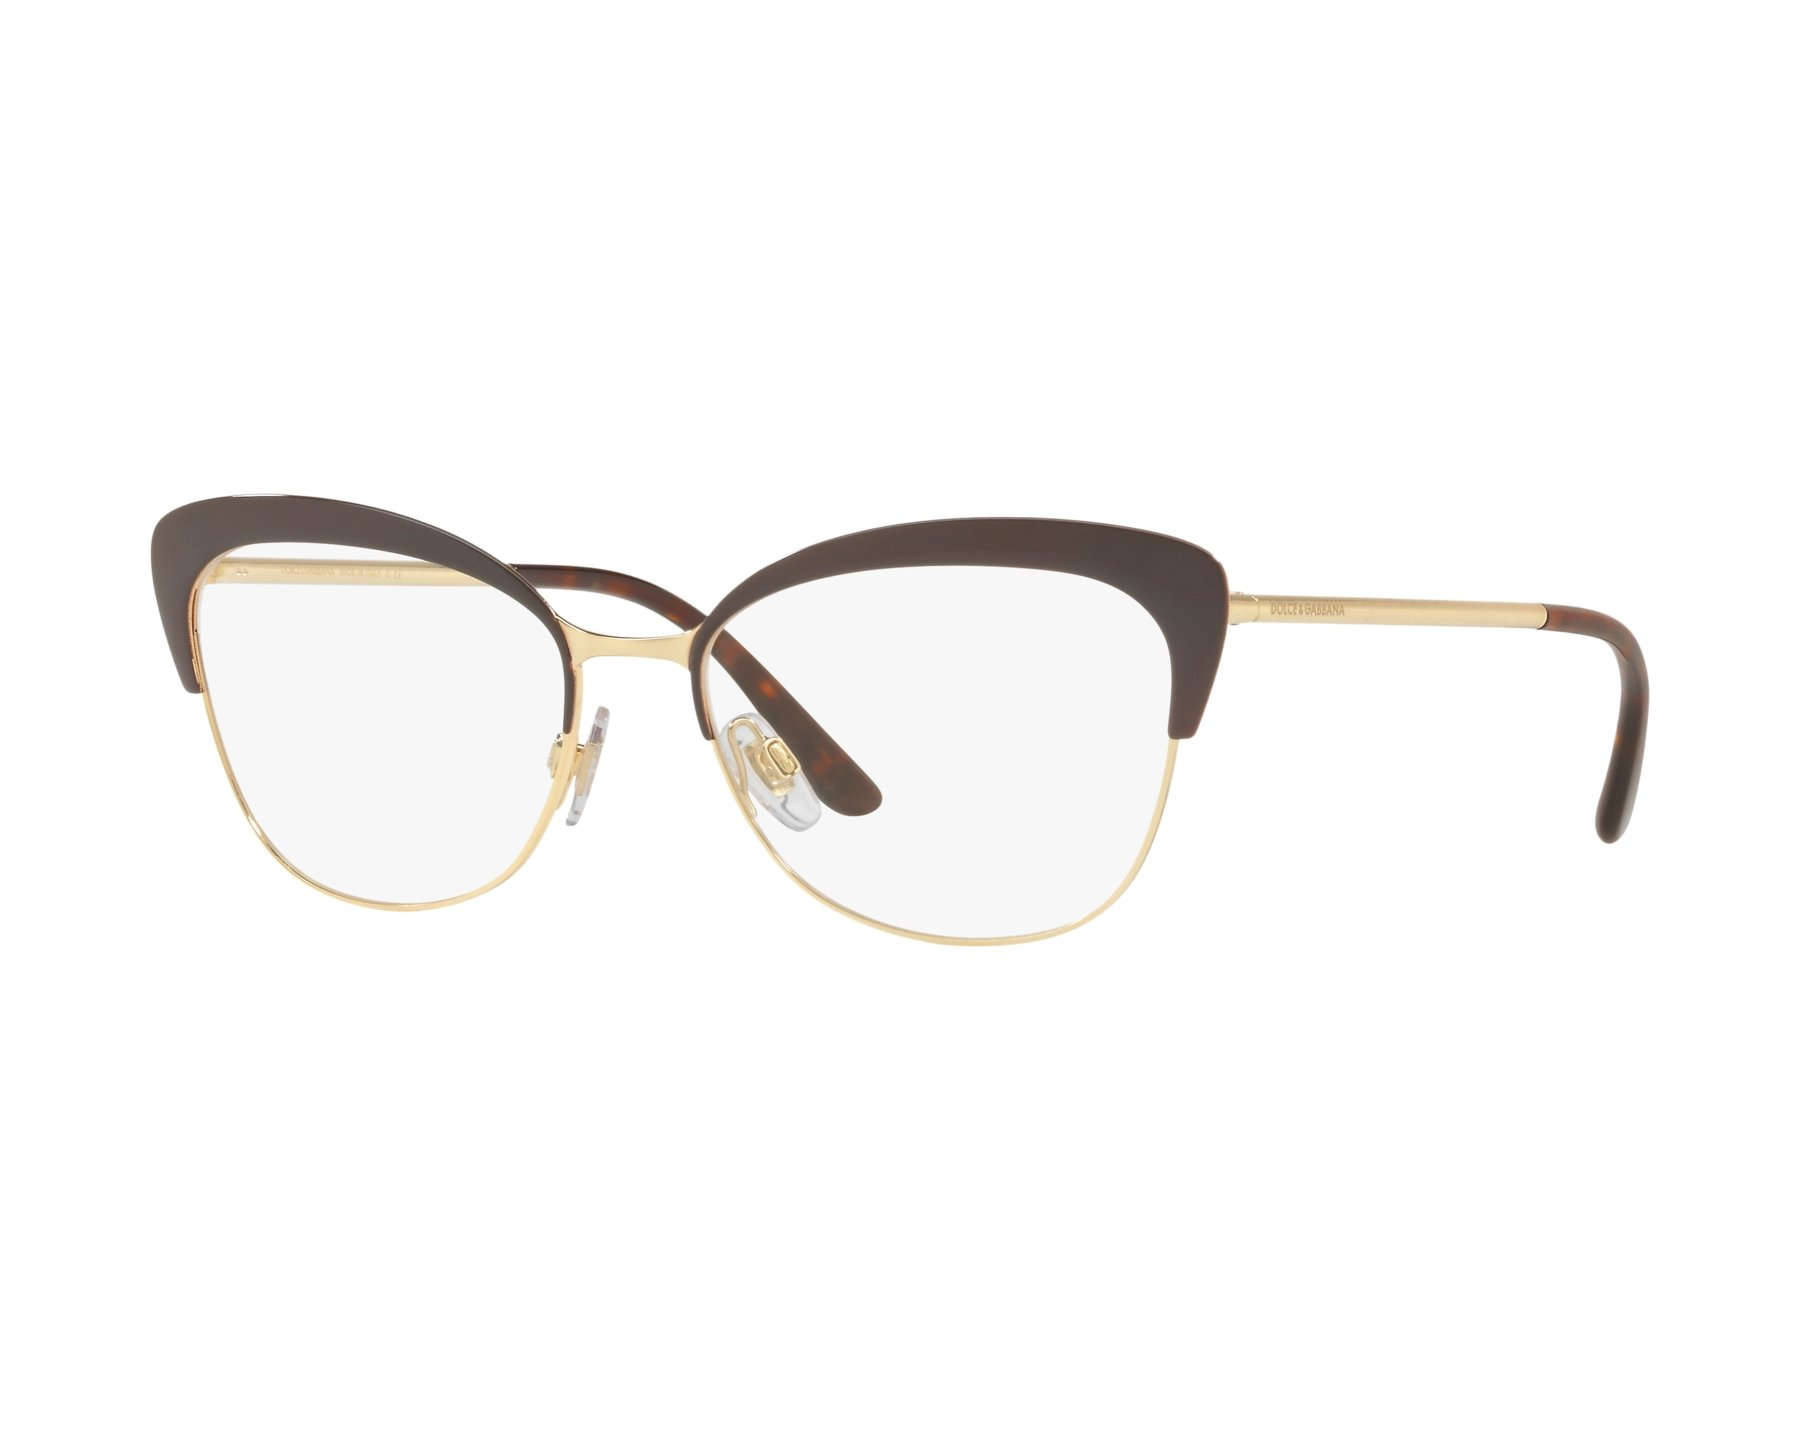 eyeglasses Dolce & Gabbana DG-1298 1315 54-16 Brown Gold